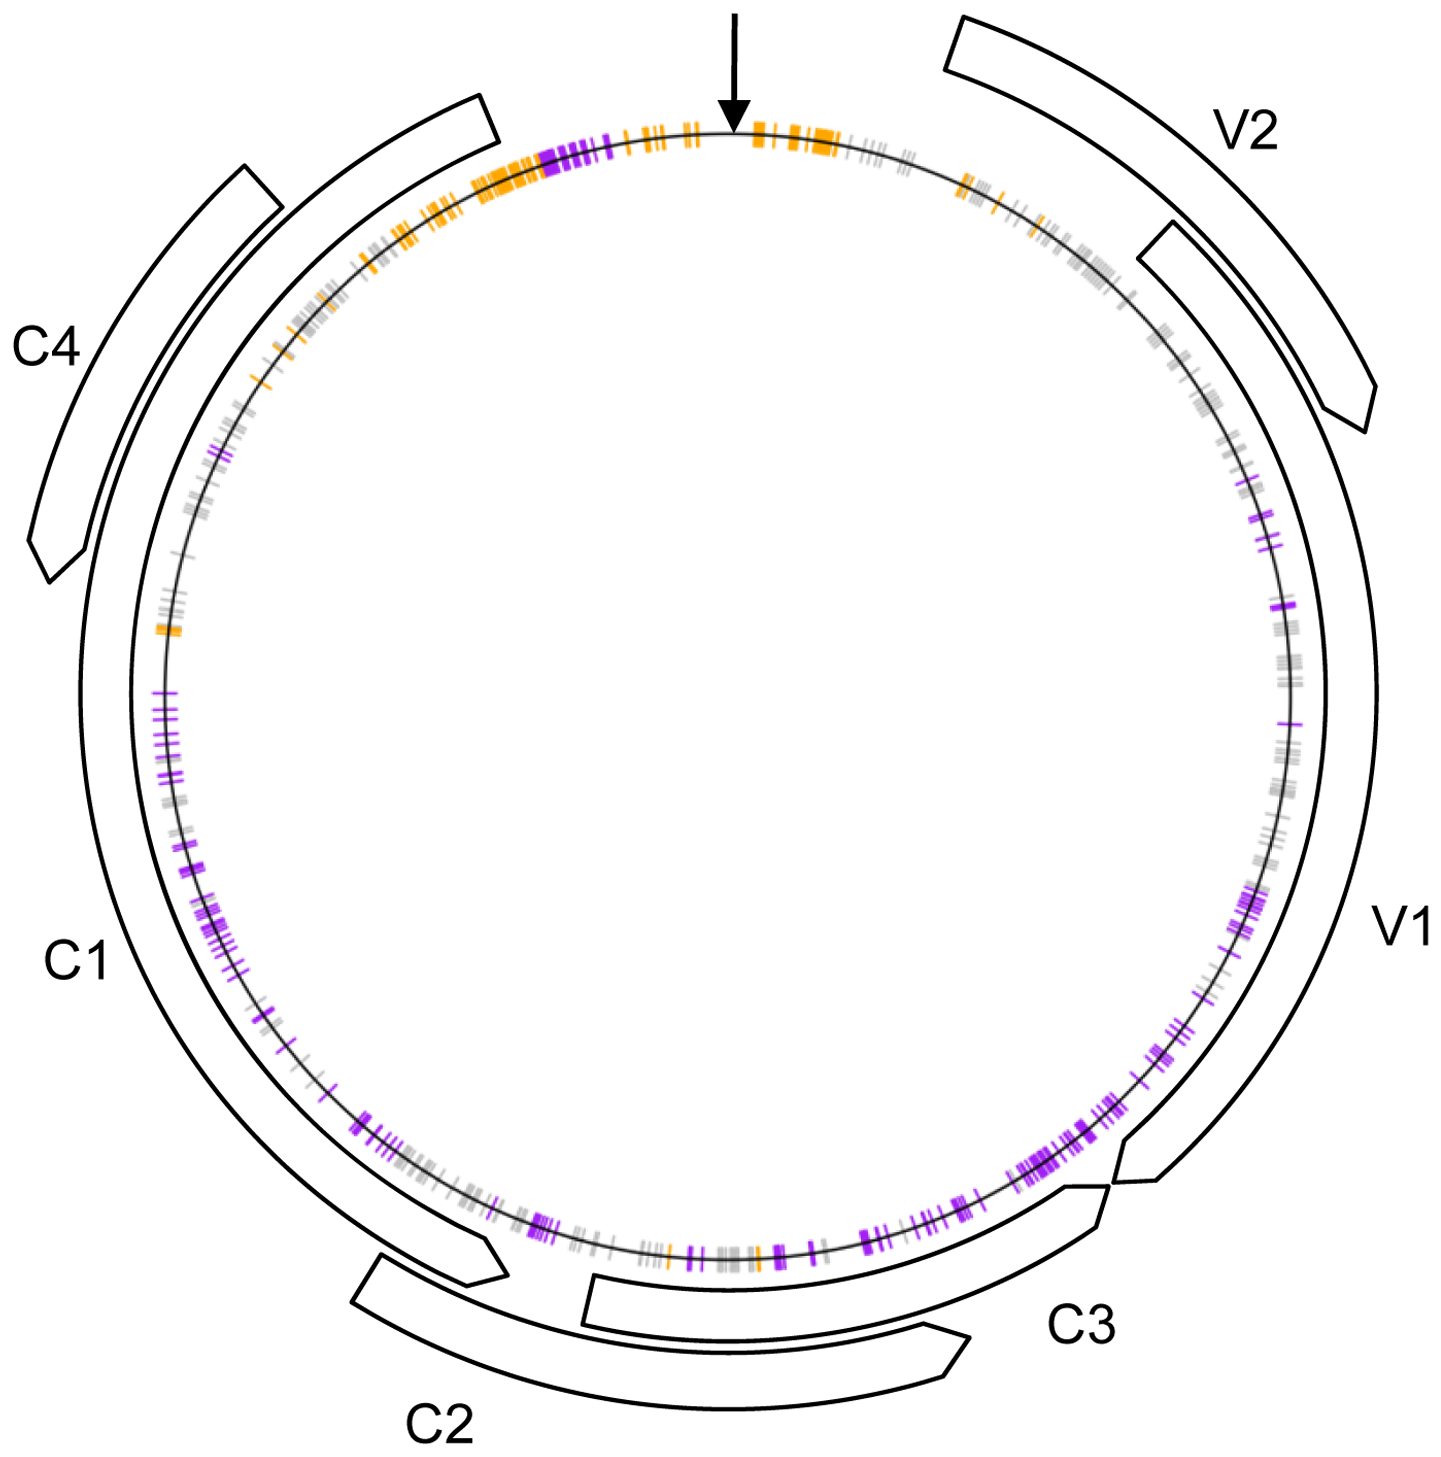 Schematic representation of the recombinant genomes indicating nucleotide positions at which more than expected <i>Tomato yellow leaf curl virus</i> (TYX; orange) or <i>Tomato leaf curl Comoros virus</i> (TOX; purple) derived nucleotides are found (<i>p</i>-value<0.001) under the assumption of random recombination.